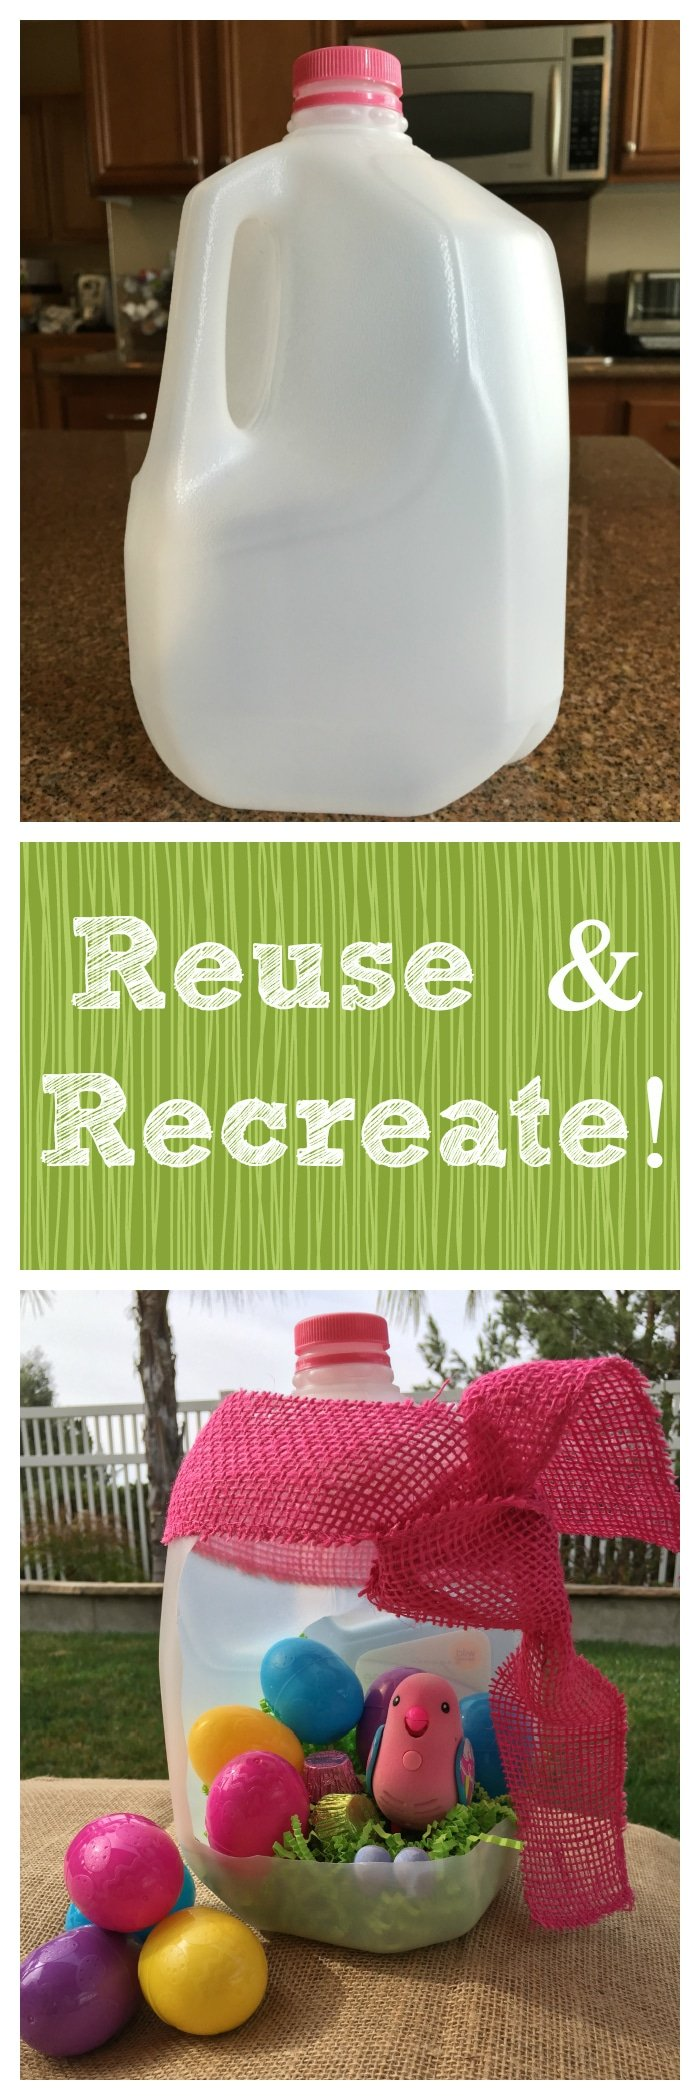 How to make your own Easter basket by repurposing a milk carton.